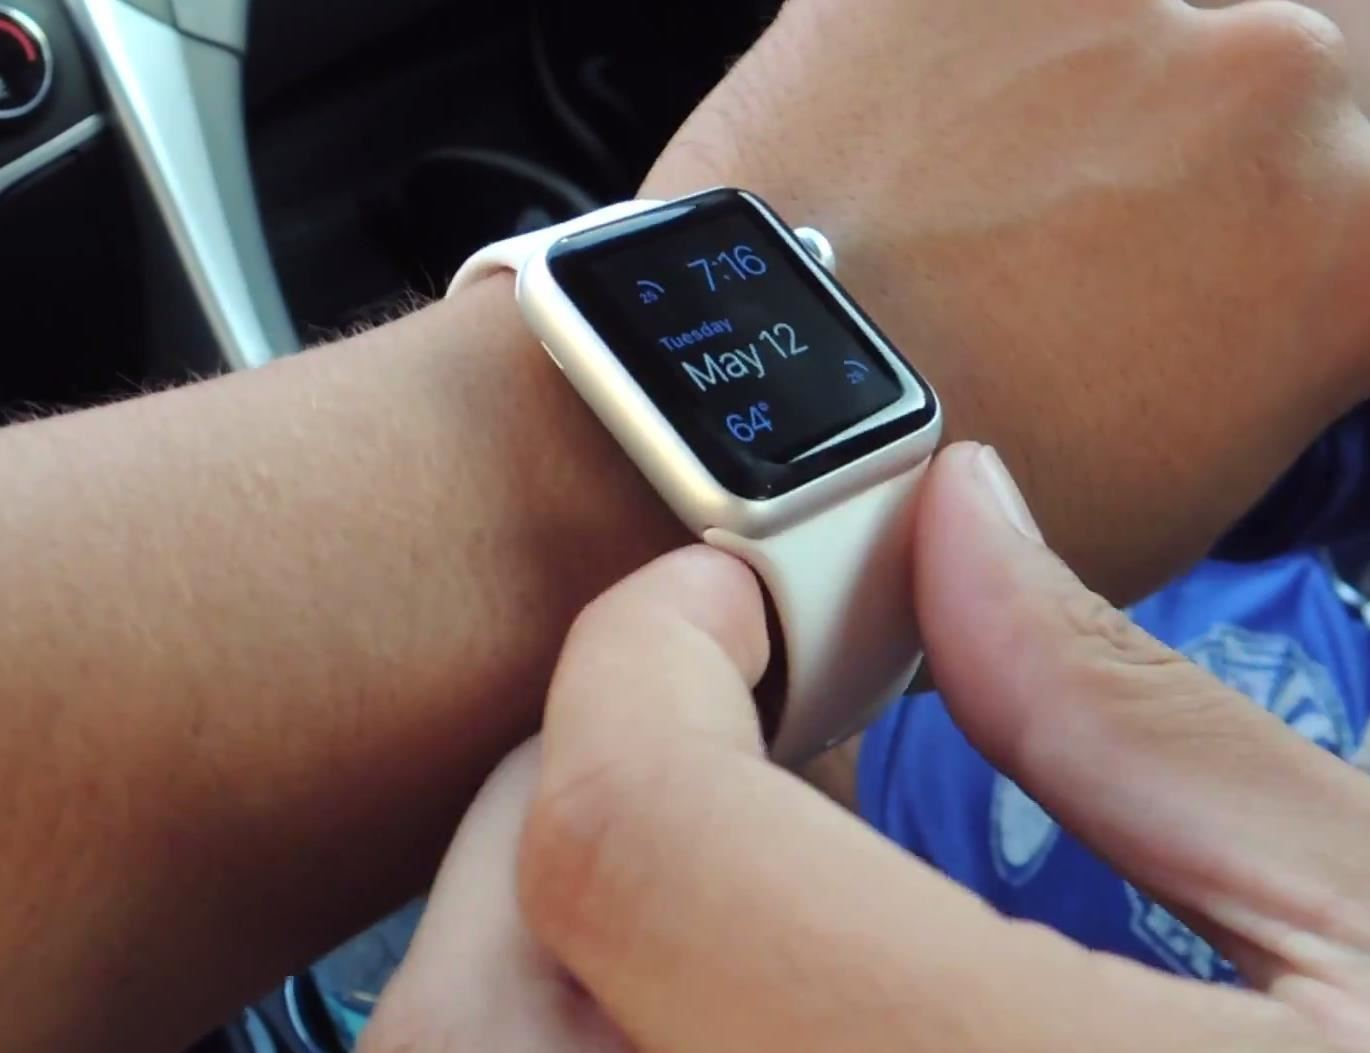 Apple Watch Vulnerability Lets Thieves Use Apple Pay Without Your PIN